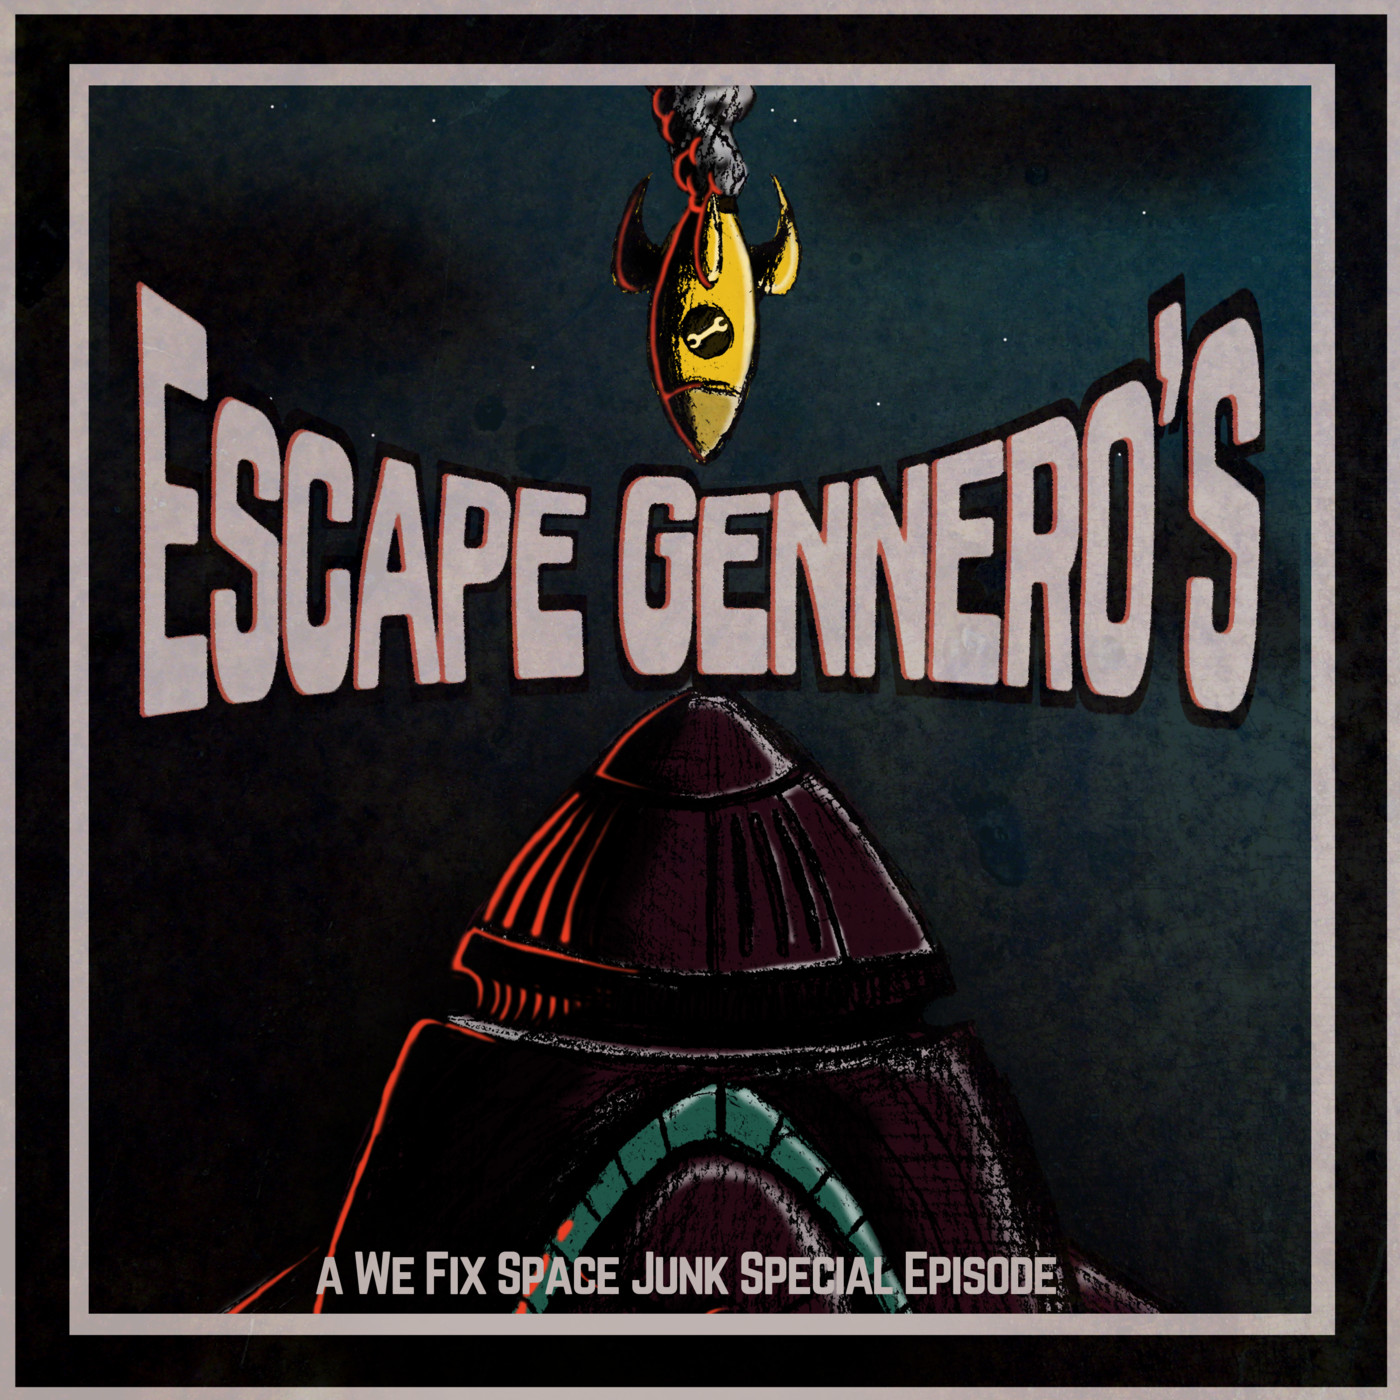 [Trailer:] Escape Gennero's, a We Fix Space Junk Special